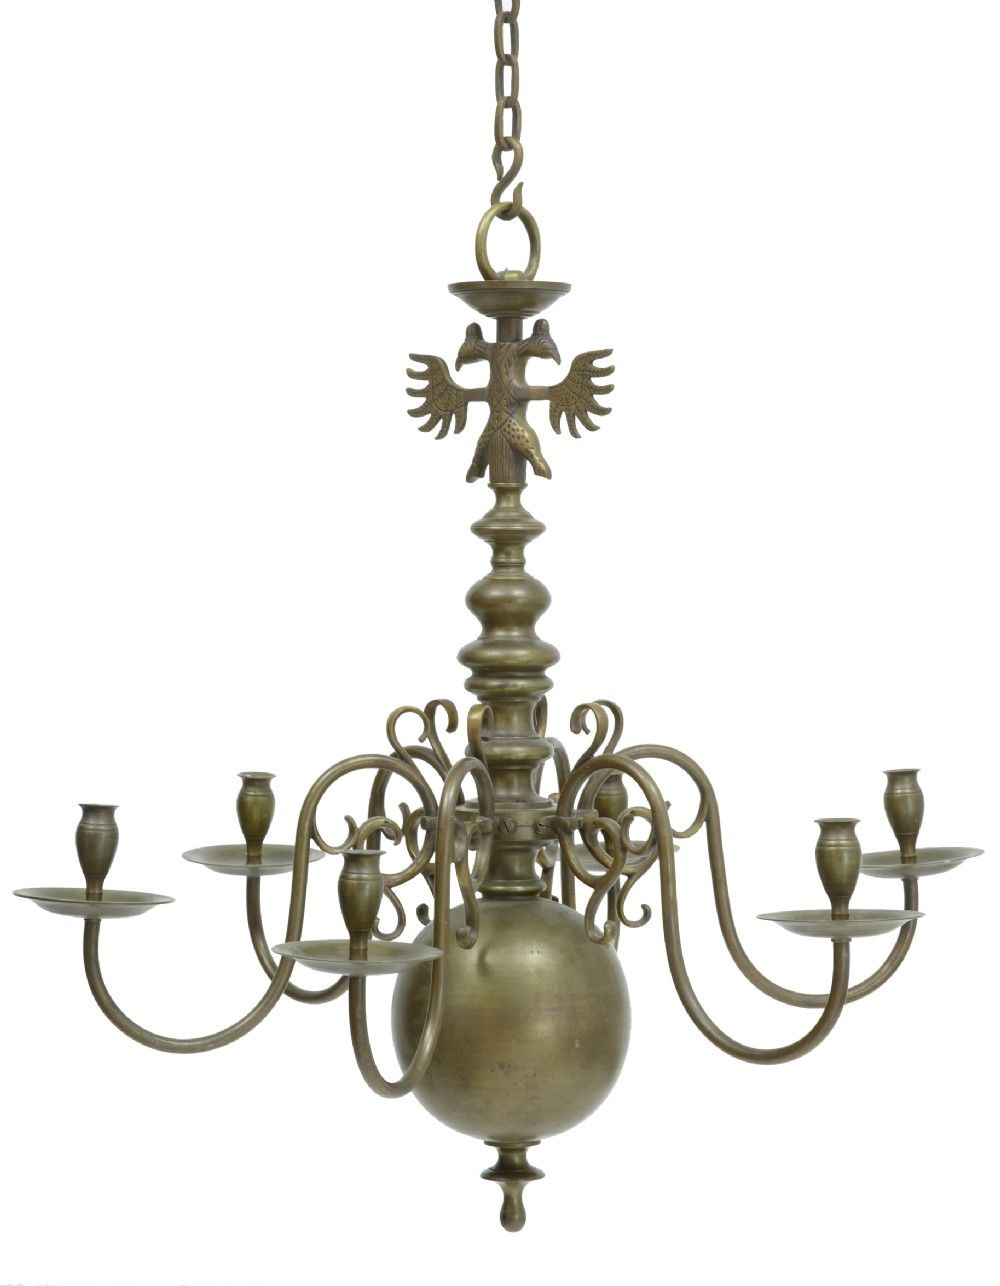 Here We Have A Fine Quality Dutch Brass Chandelier And Unusually Its Solid  Unlike Most Of The Chandeliers From This Period On The Market. - 19TH CENTURY SOLID BRASS DUTCH 6 ARM CHANDELIER £1350